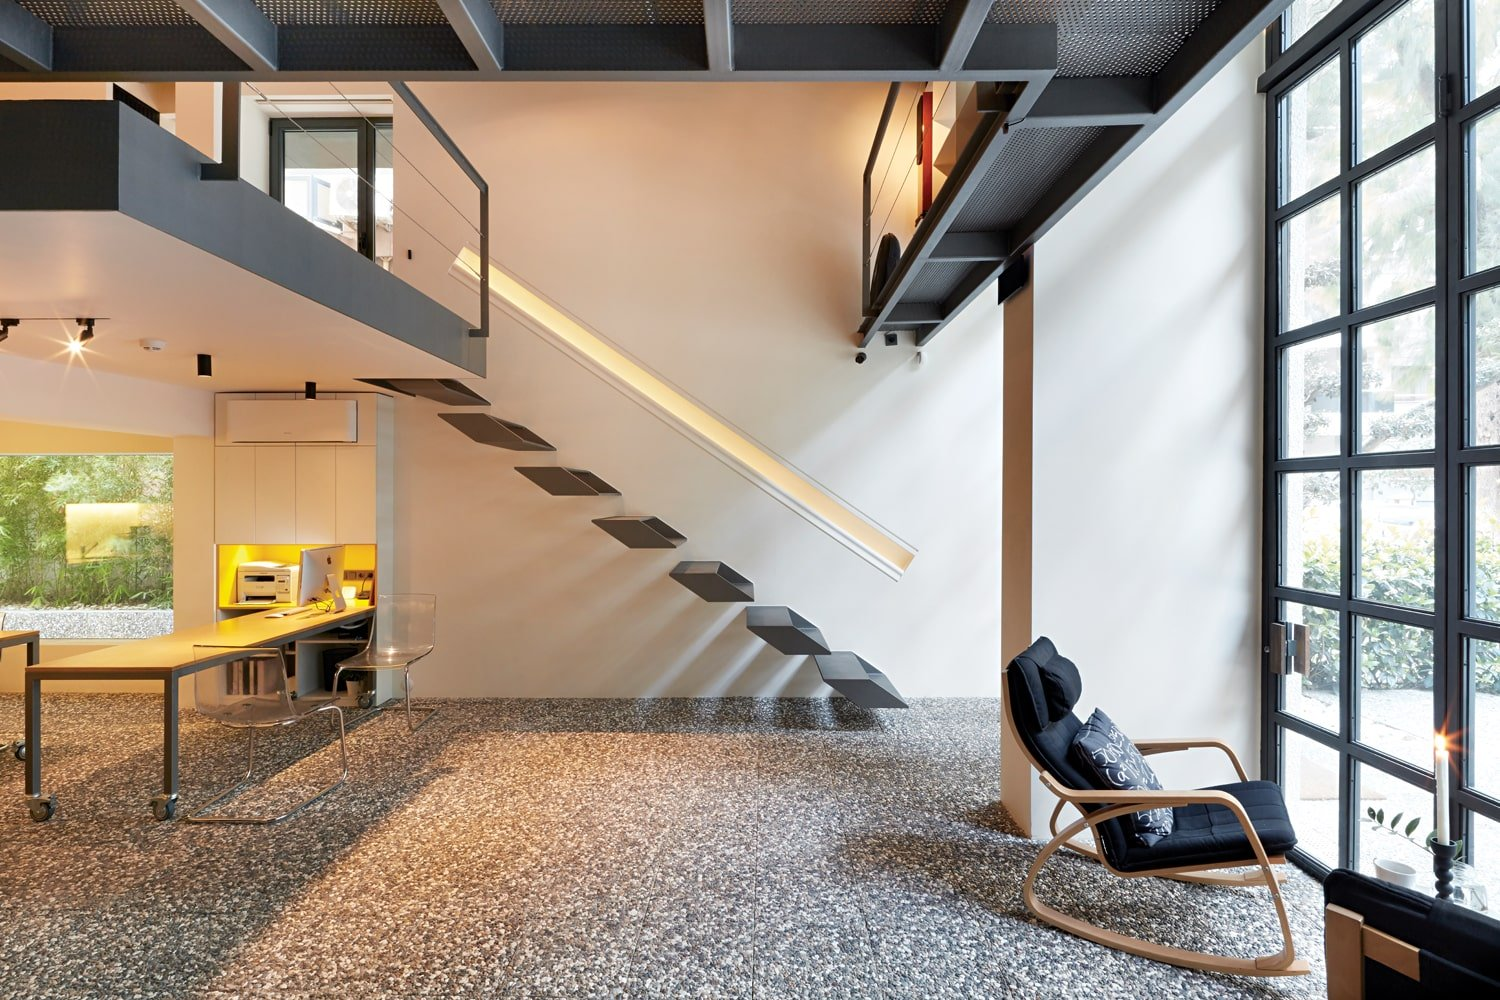 This is a lovely view of this studio loft with a modern floating staircase that matches with the steel structures of the second level. Here you can also see the large glass wall that rises from the floor to the next floor above.